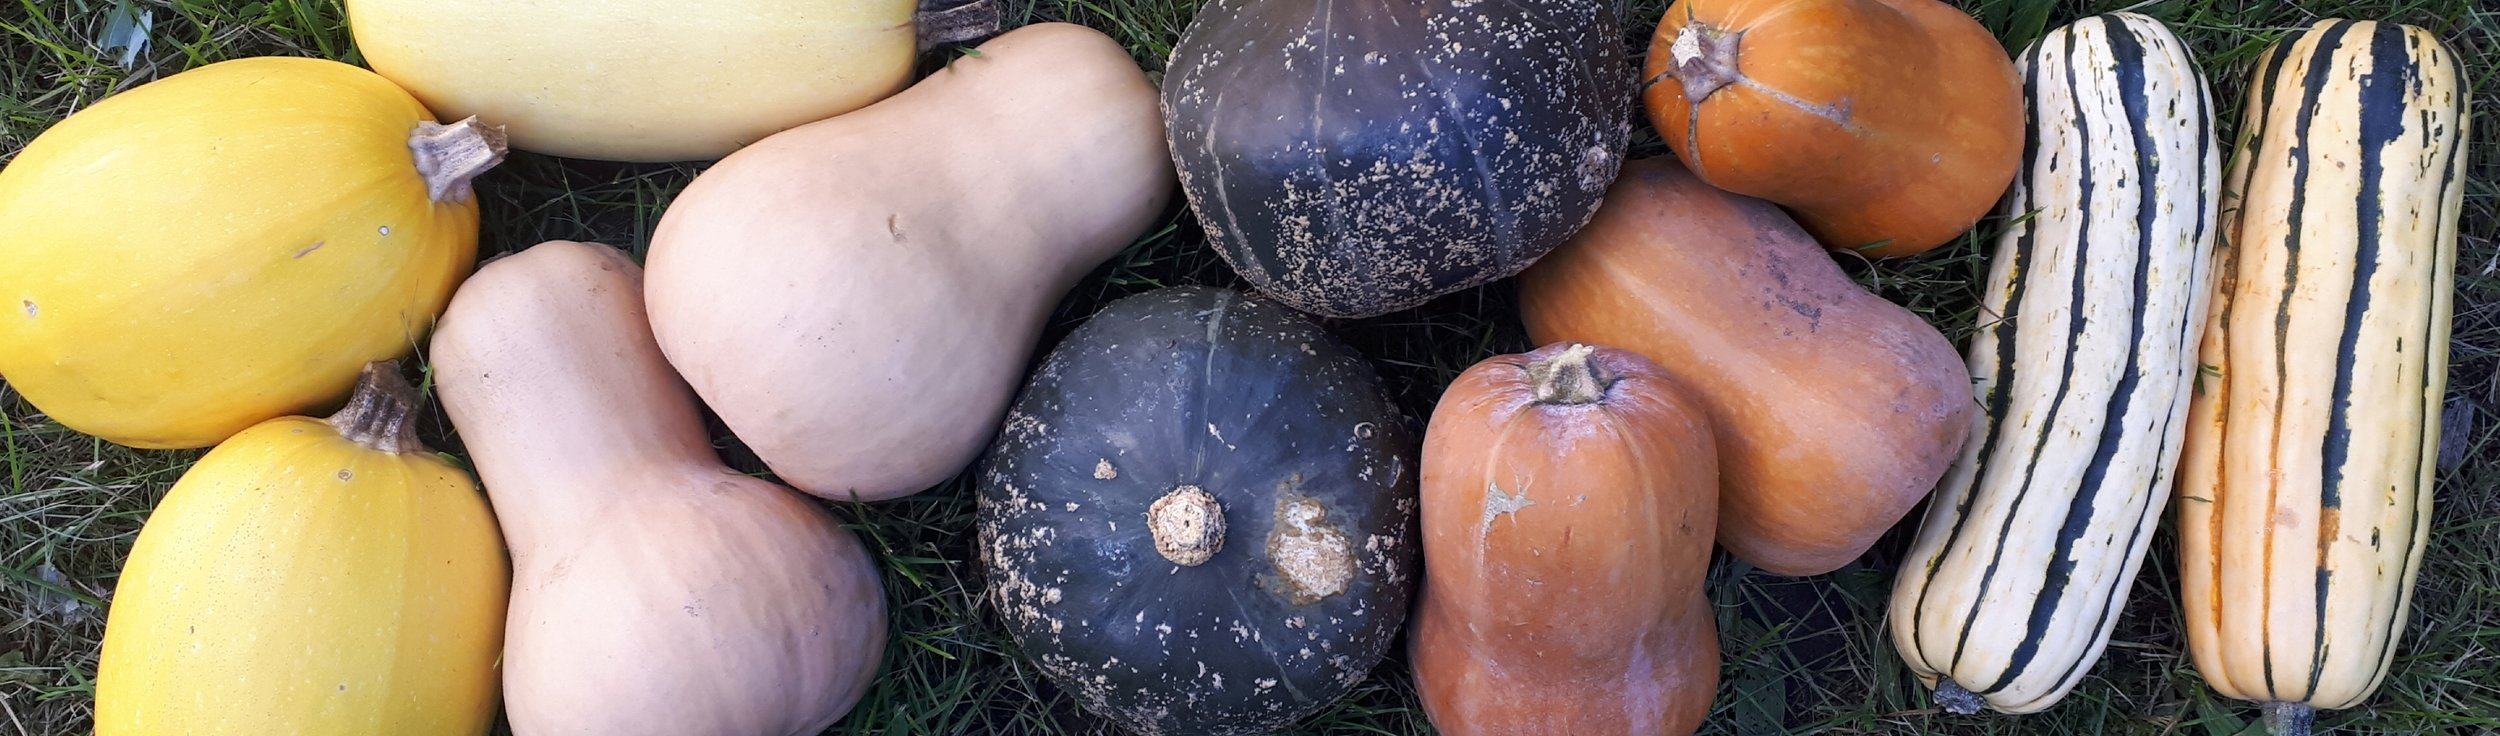 From left to right: Spaghetti squash; butterNUT (tan); butterCUP (dark green); Honeynut; Delicata; not shown: Sweet Dumpling… they are the same colouring as Delicata, but a round shape